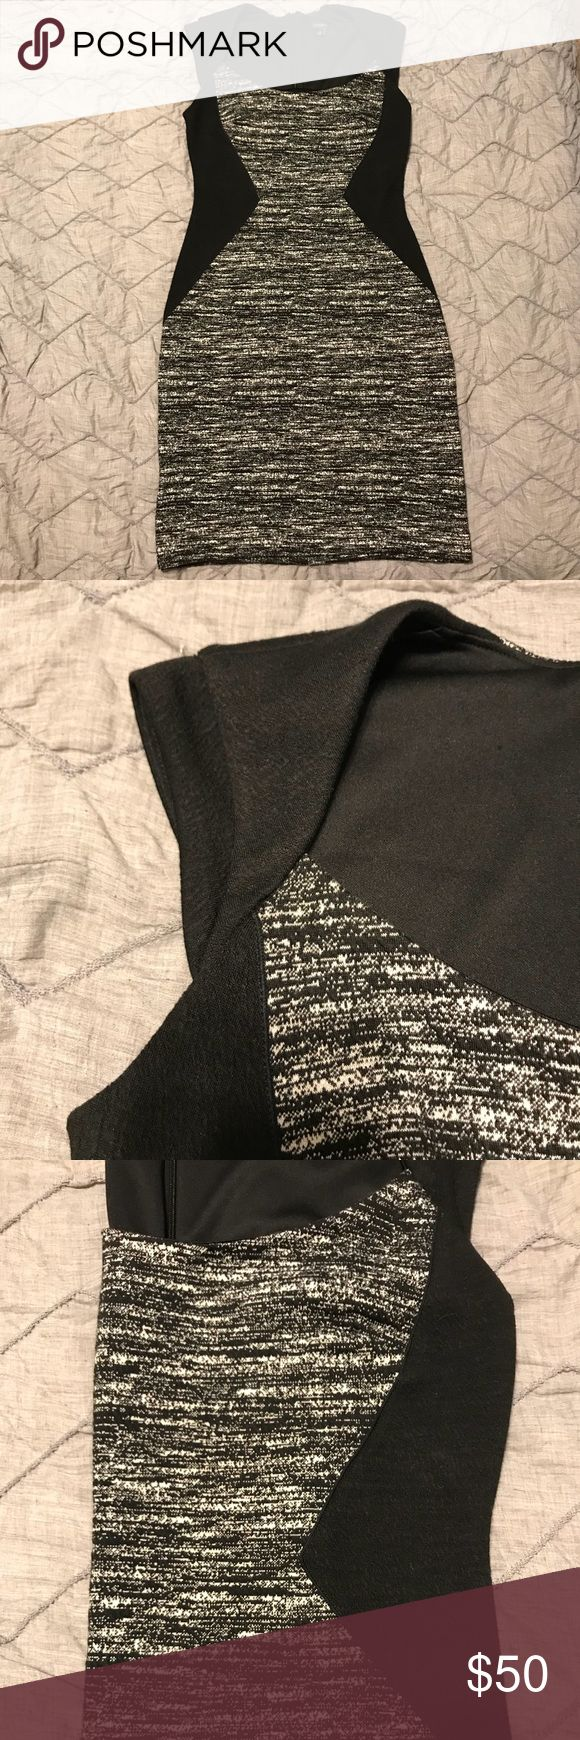 Ann Taylor Color Block Dress Size 0 color block dress, great for work! This dress is SOFT and feels a bit like a jersey sweater material so it's super comfortable but looks professional. Dress is 81% polyester, 18% rayon, and 1% spandex. Dry clean only. Ann Taylor Dresses Midi